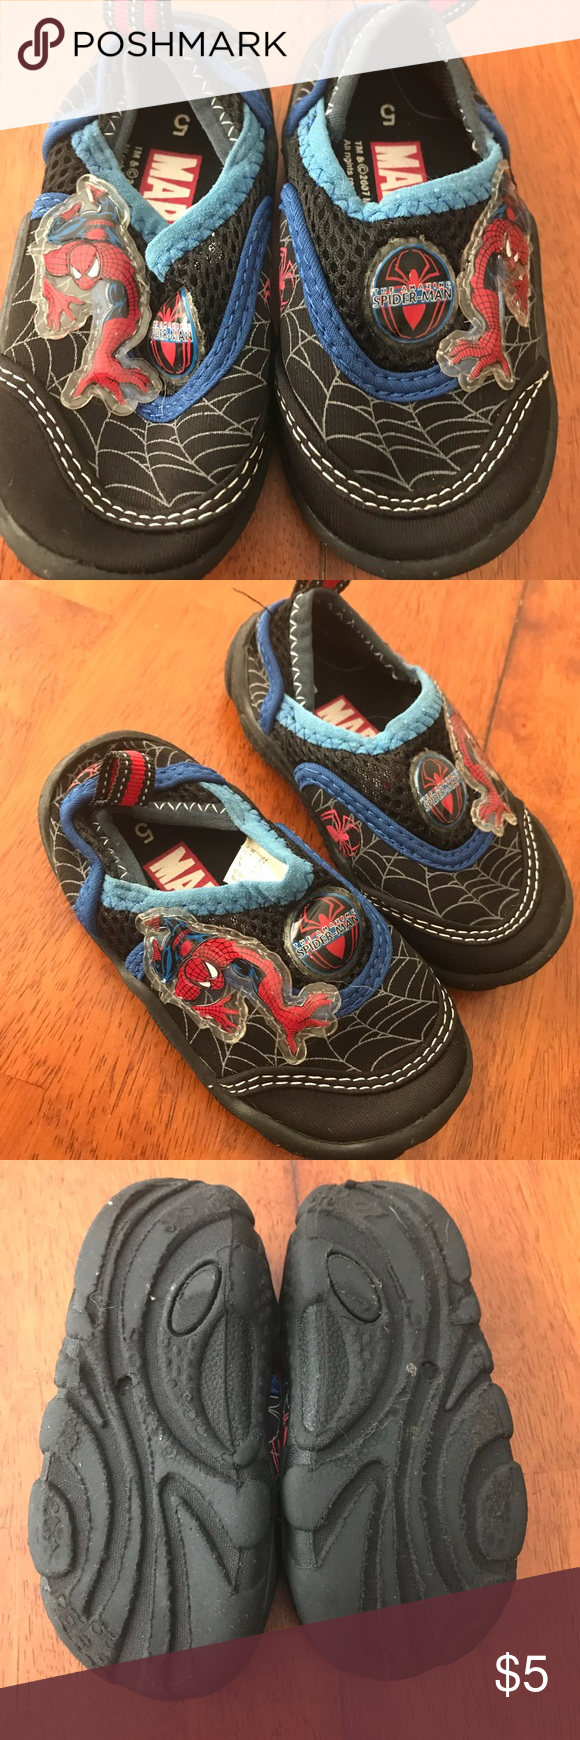 82ee293a5e8b Spider-Man Baby water shoes Baby size 5 water shoes featuring Spider-Man.